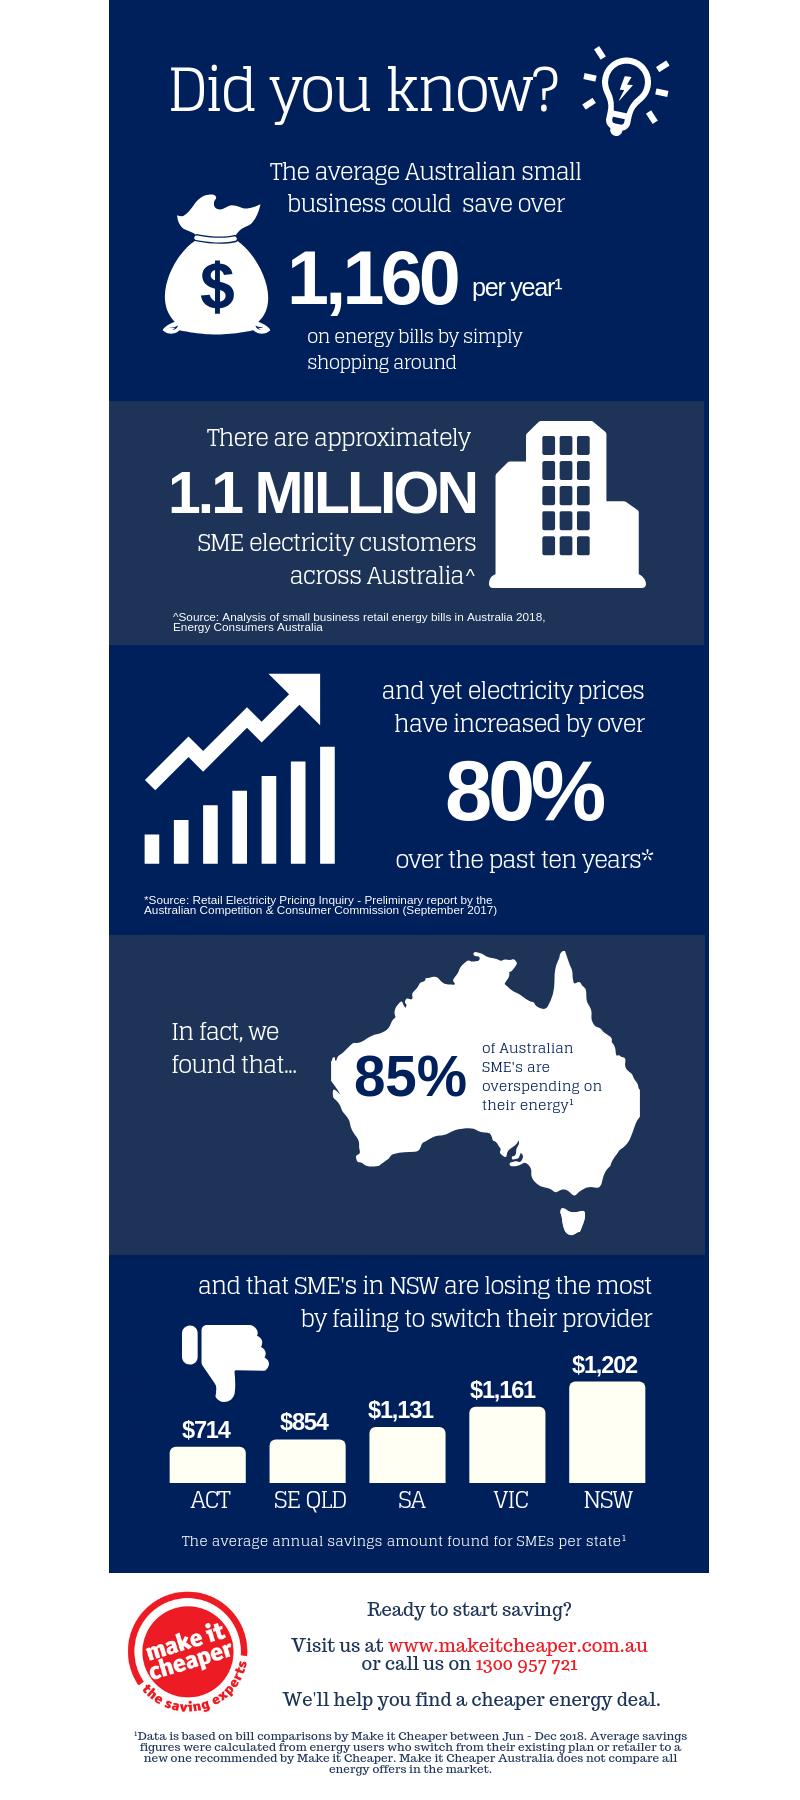 How Much Are Australian SME's Overpaying On Energy?